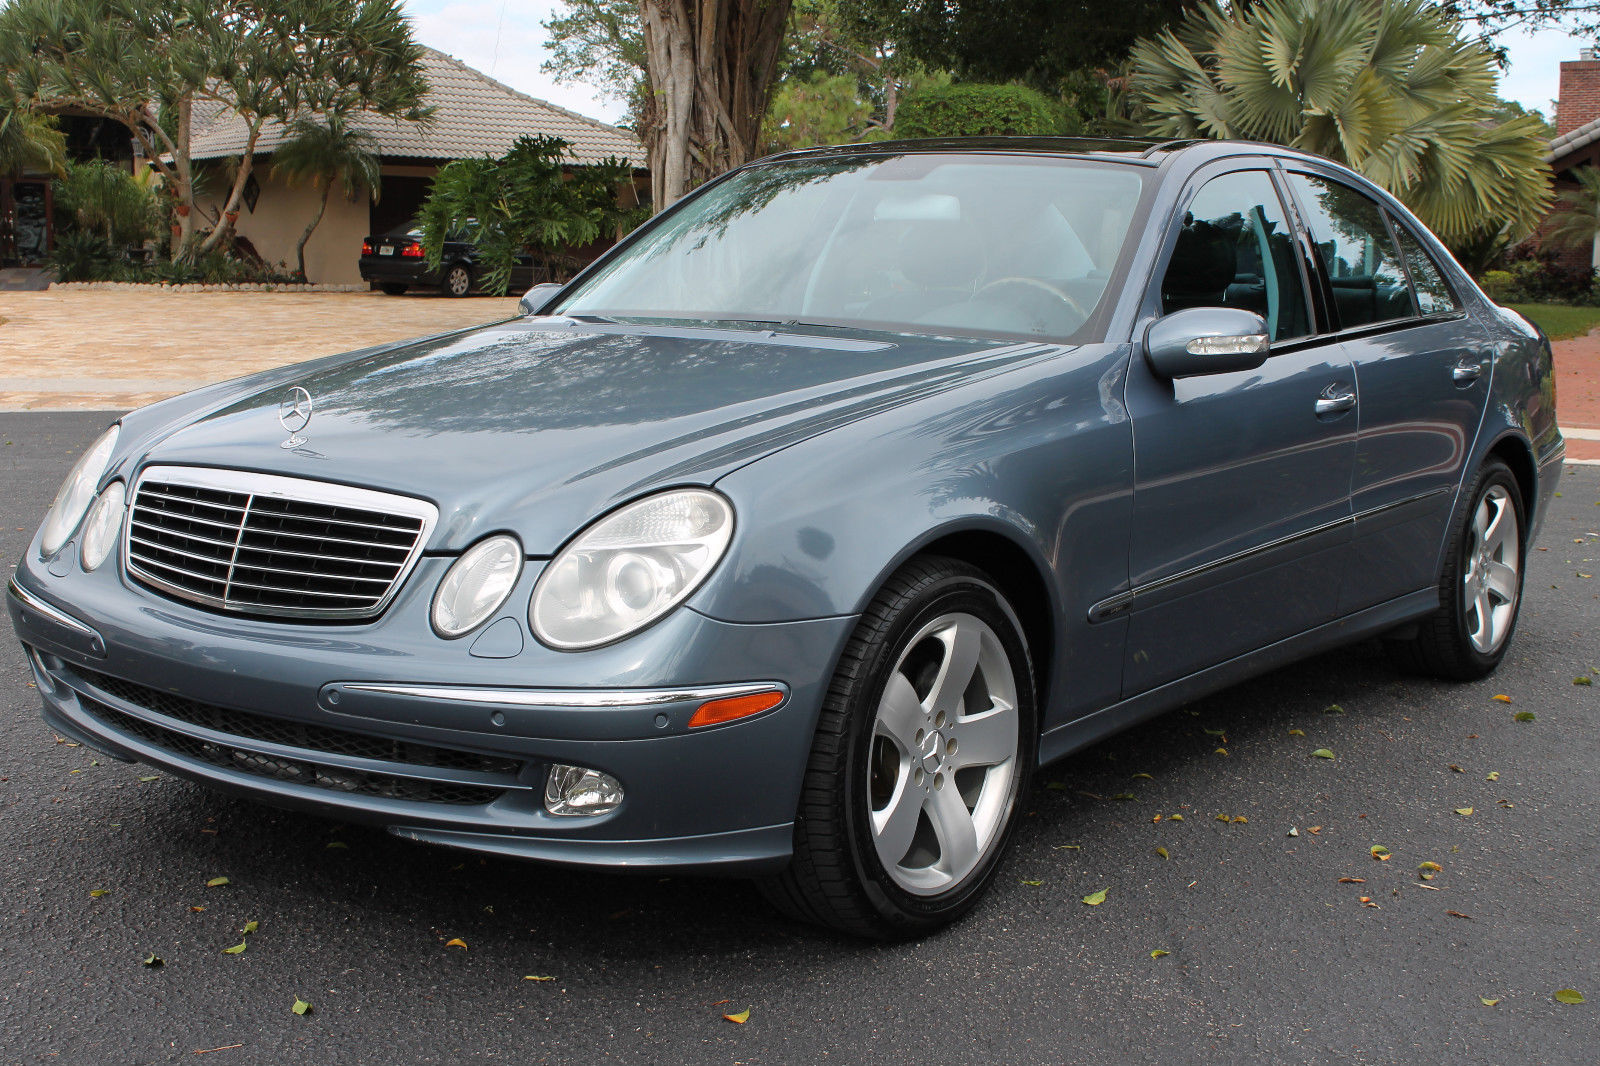 2003 mercedes benz e class pictures cargurus for Mercedes benz 07